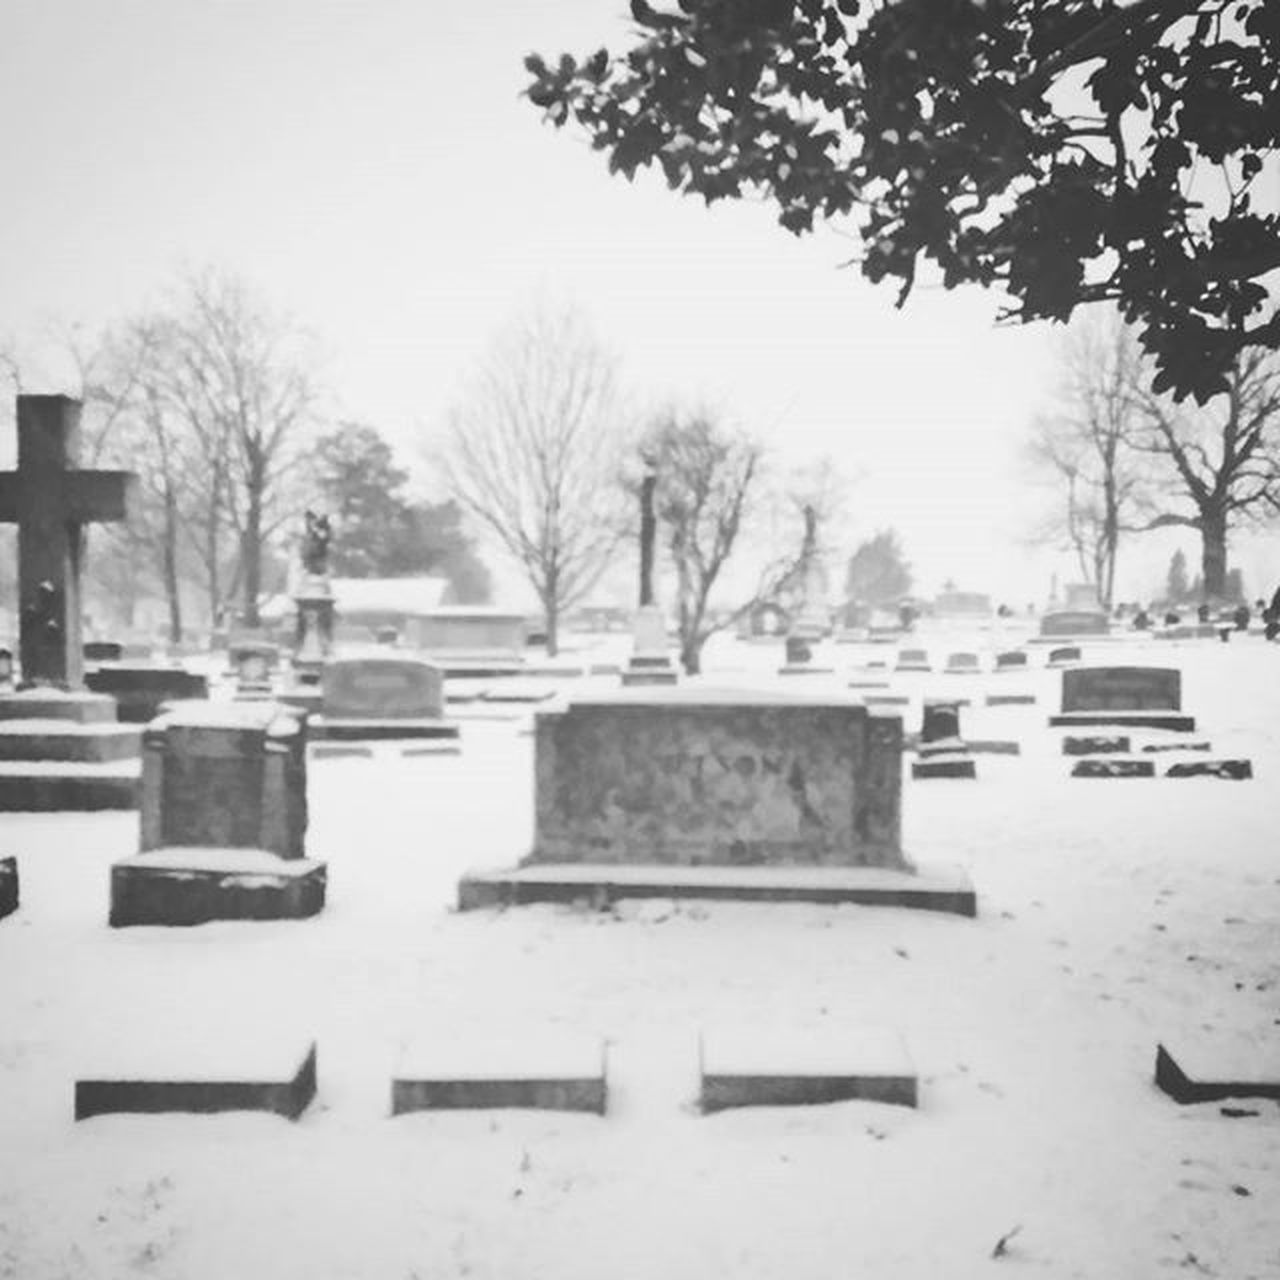 Slumber on... . . . . Photography Cemetary Winter Whiteout Frozen Snow Winchesterky Winchestercemetery Graveyard Headstones True_photo_lover Photogram Picsofinstagram Outdoorphotography Naturephotography Graveyardphotography Photofy Photogonia Picsartofficial Rip Picsart Picturesque Instaphoto Artphotography Artogram kentuckyartist kyartist kyphotographer kyphotos graveyard_shots